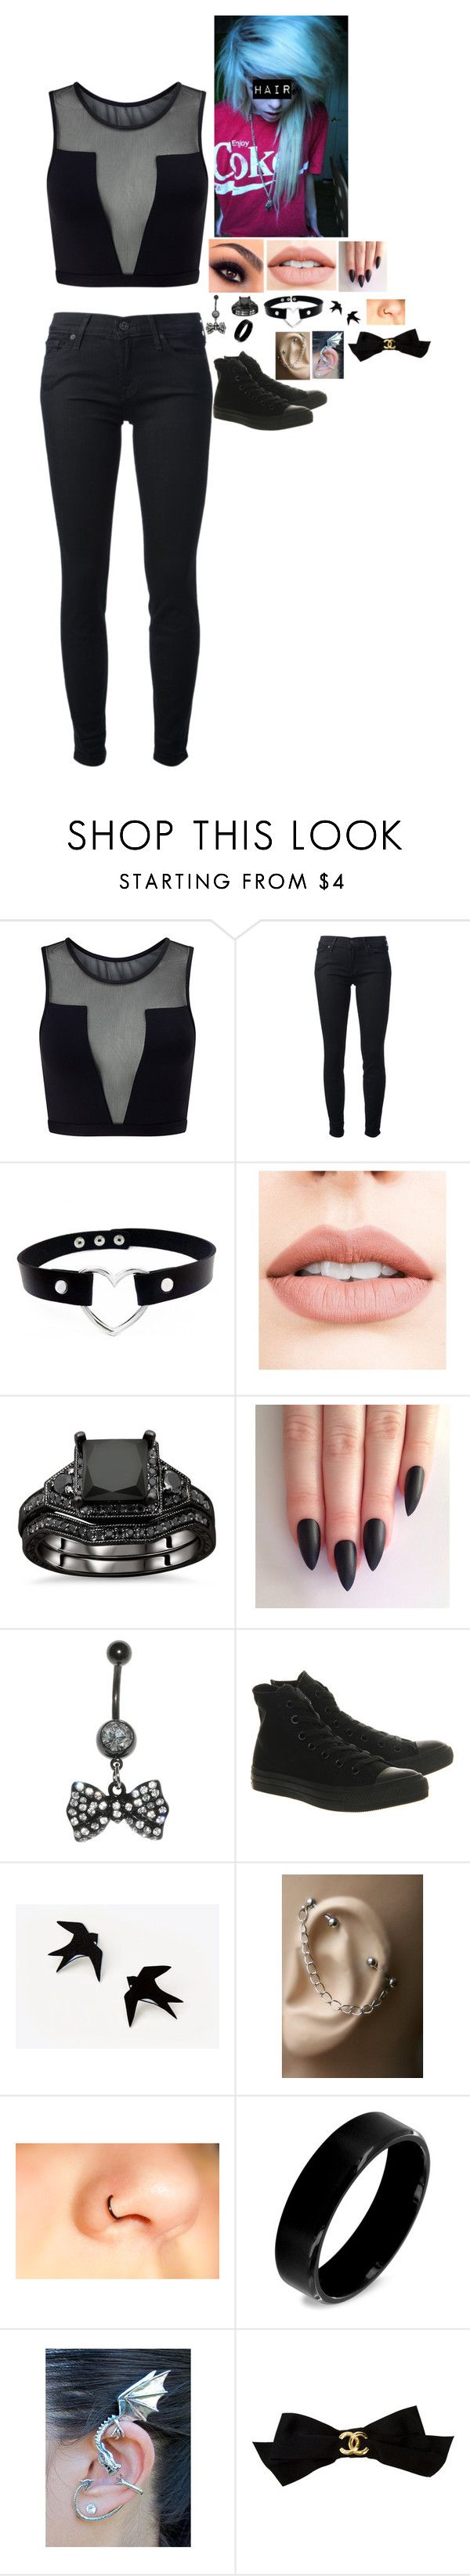 """""""""""The Kids Aren't Alright"""" - Fall Out Boy"""" by wonderland-13-swift ❤ liked on Polyvore featuring Varley, 7 For All Mankind, Jouer, Converse, West Coast Jewelry and Chanel"""